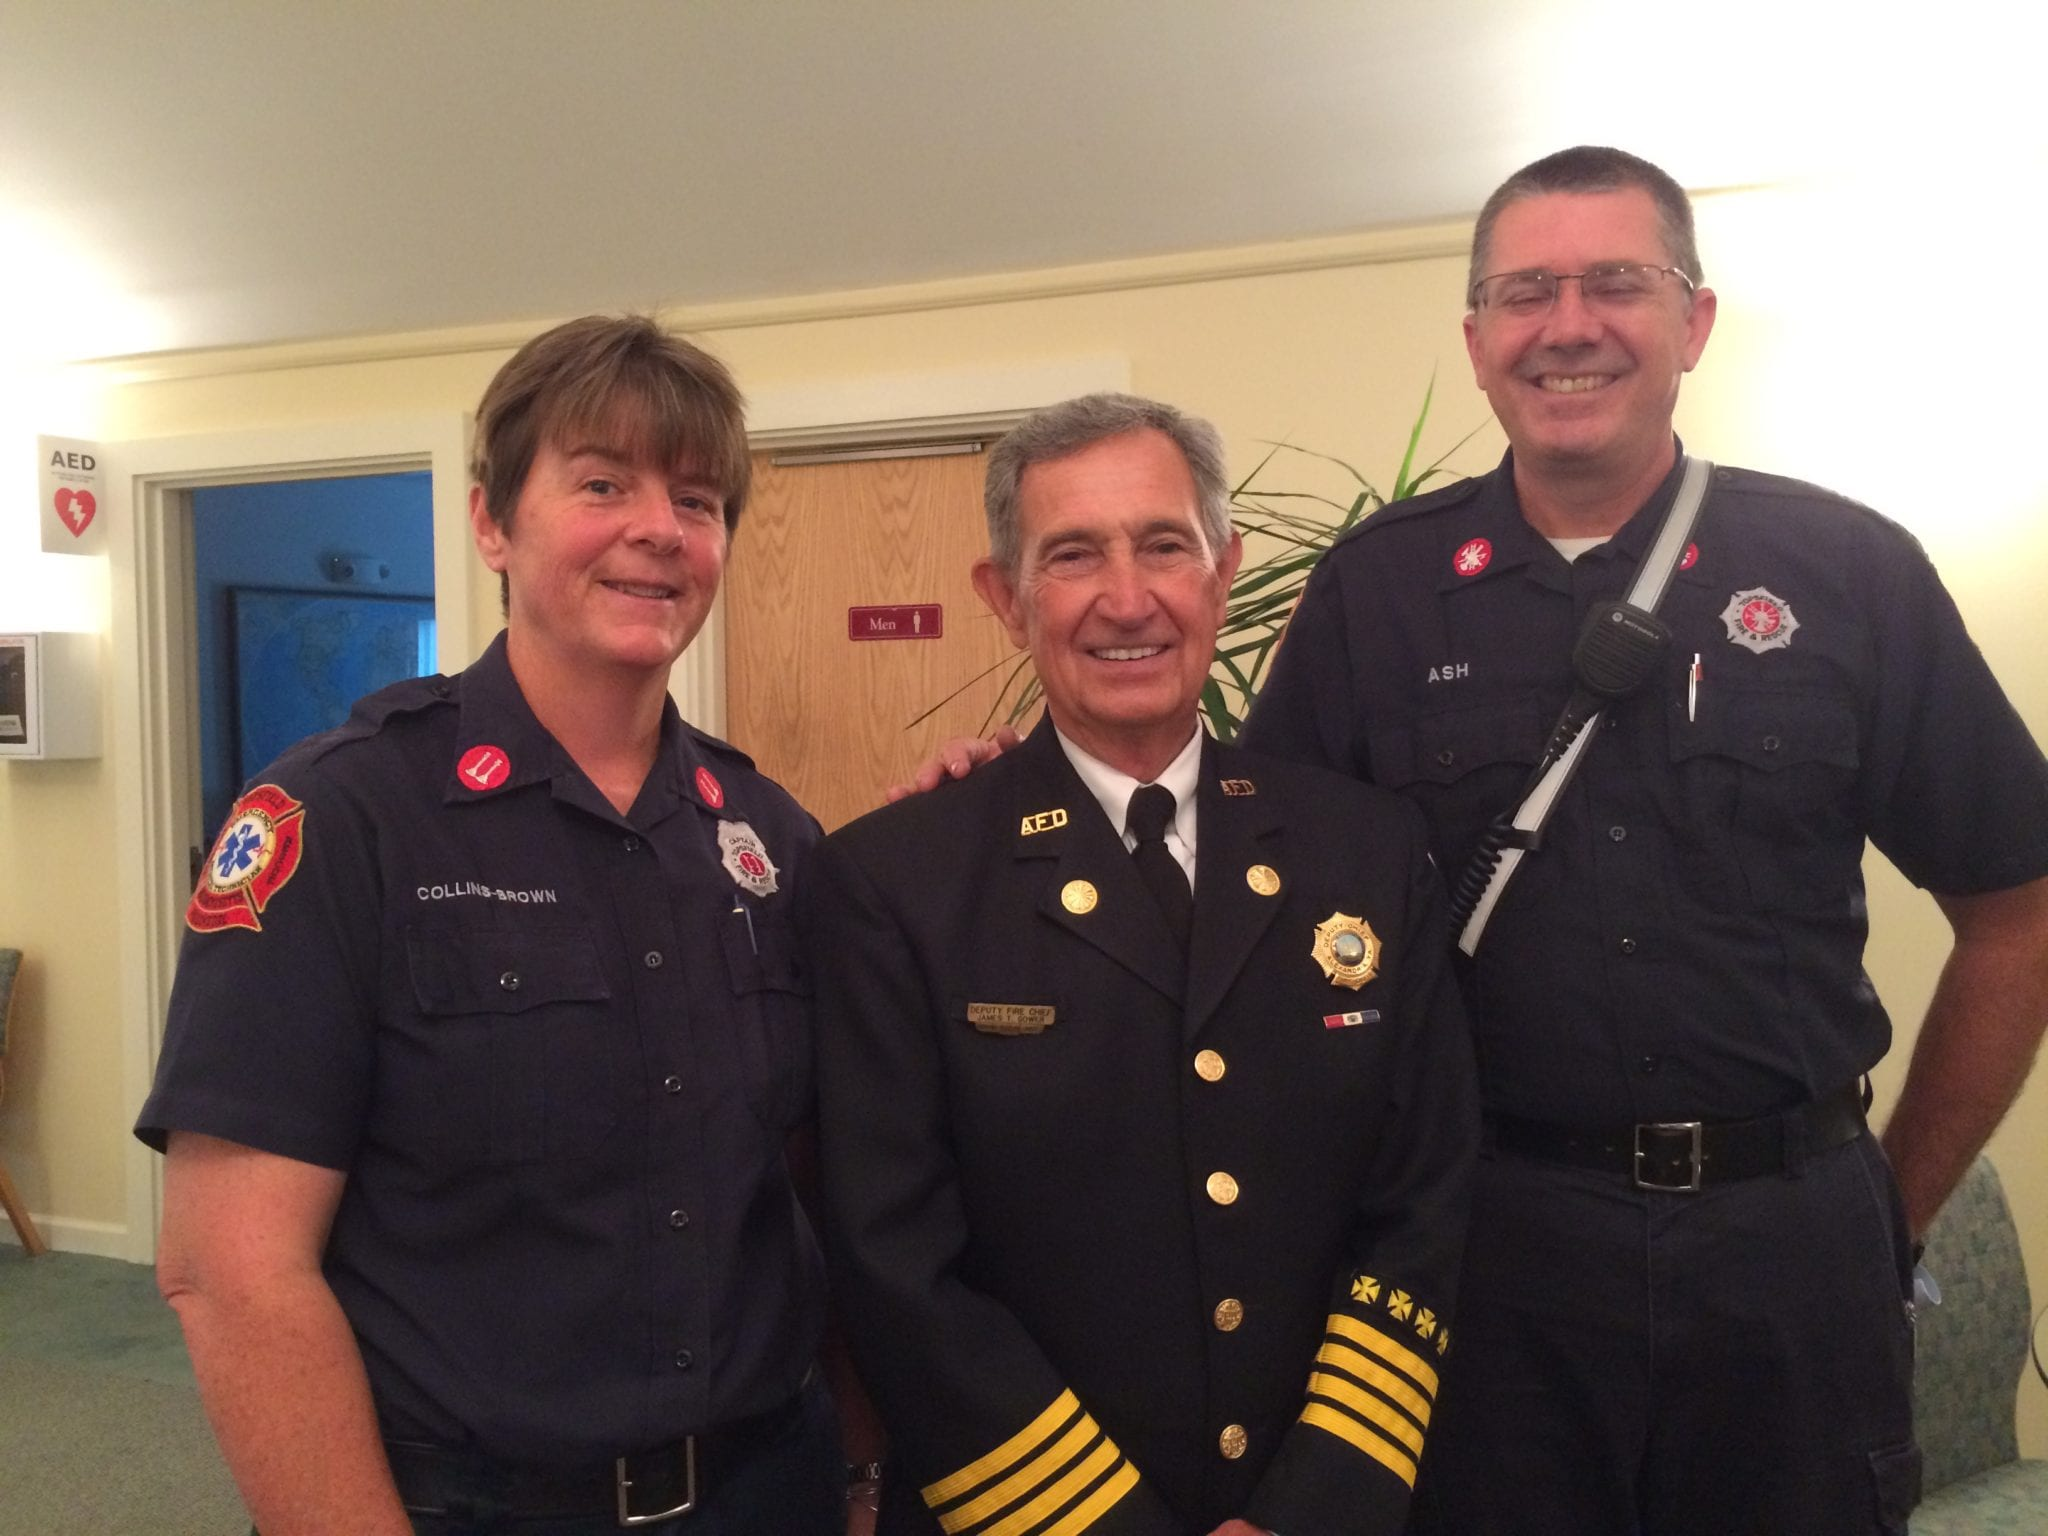 Pictured here are Captain Jen Collins-Brown, Deputy Chief Gower, and Firefighter Thomas Ash.